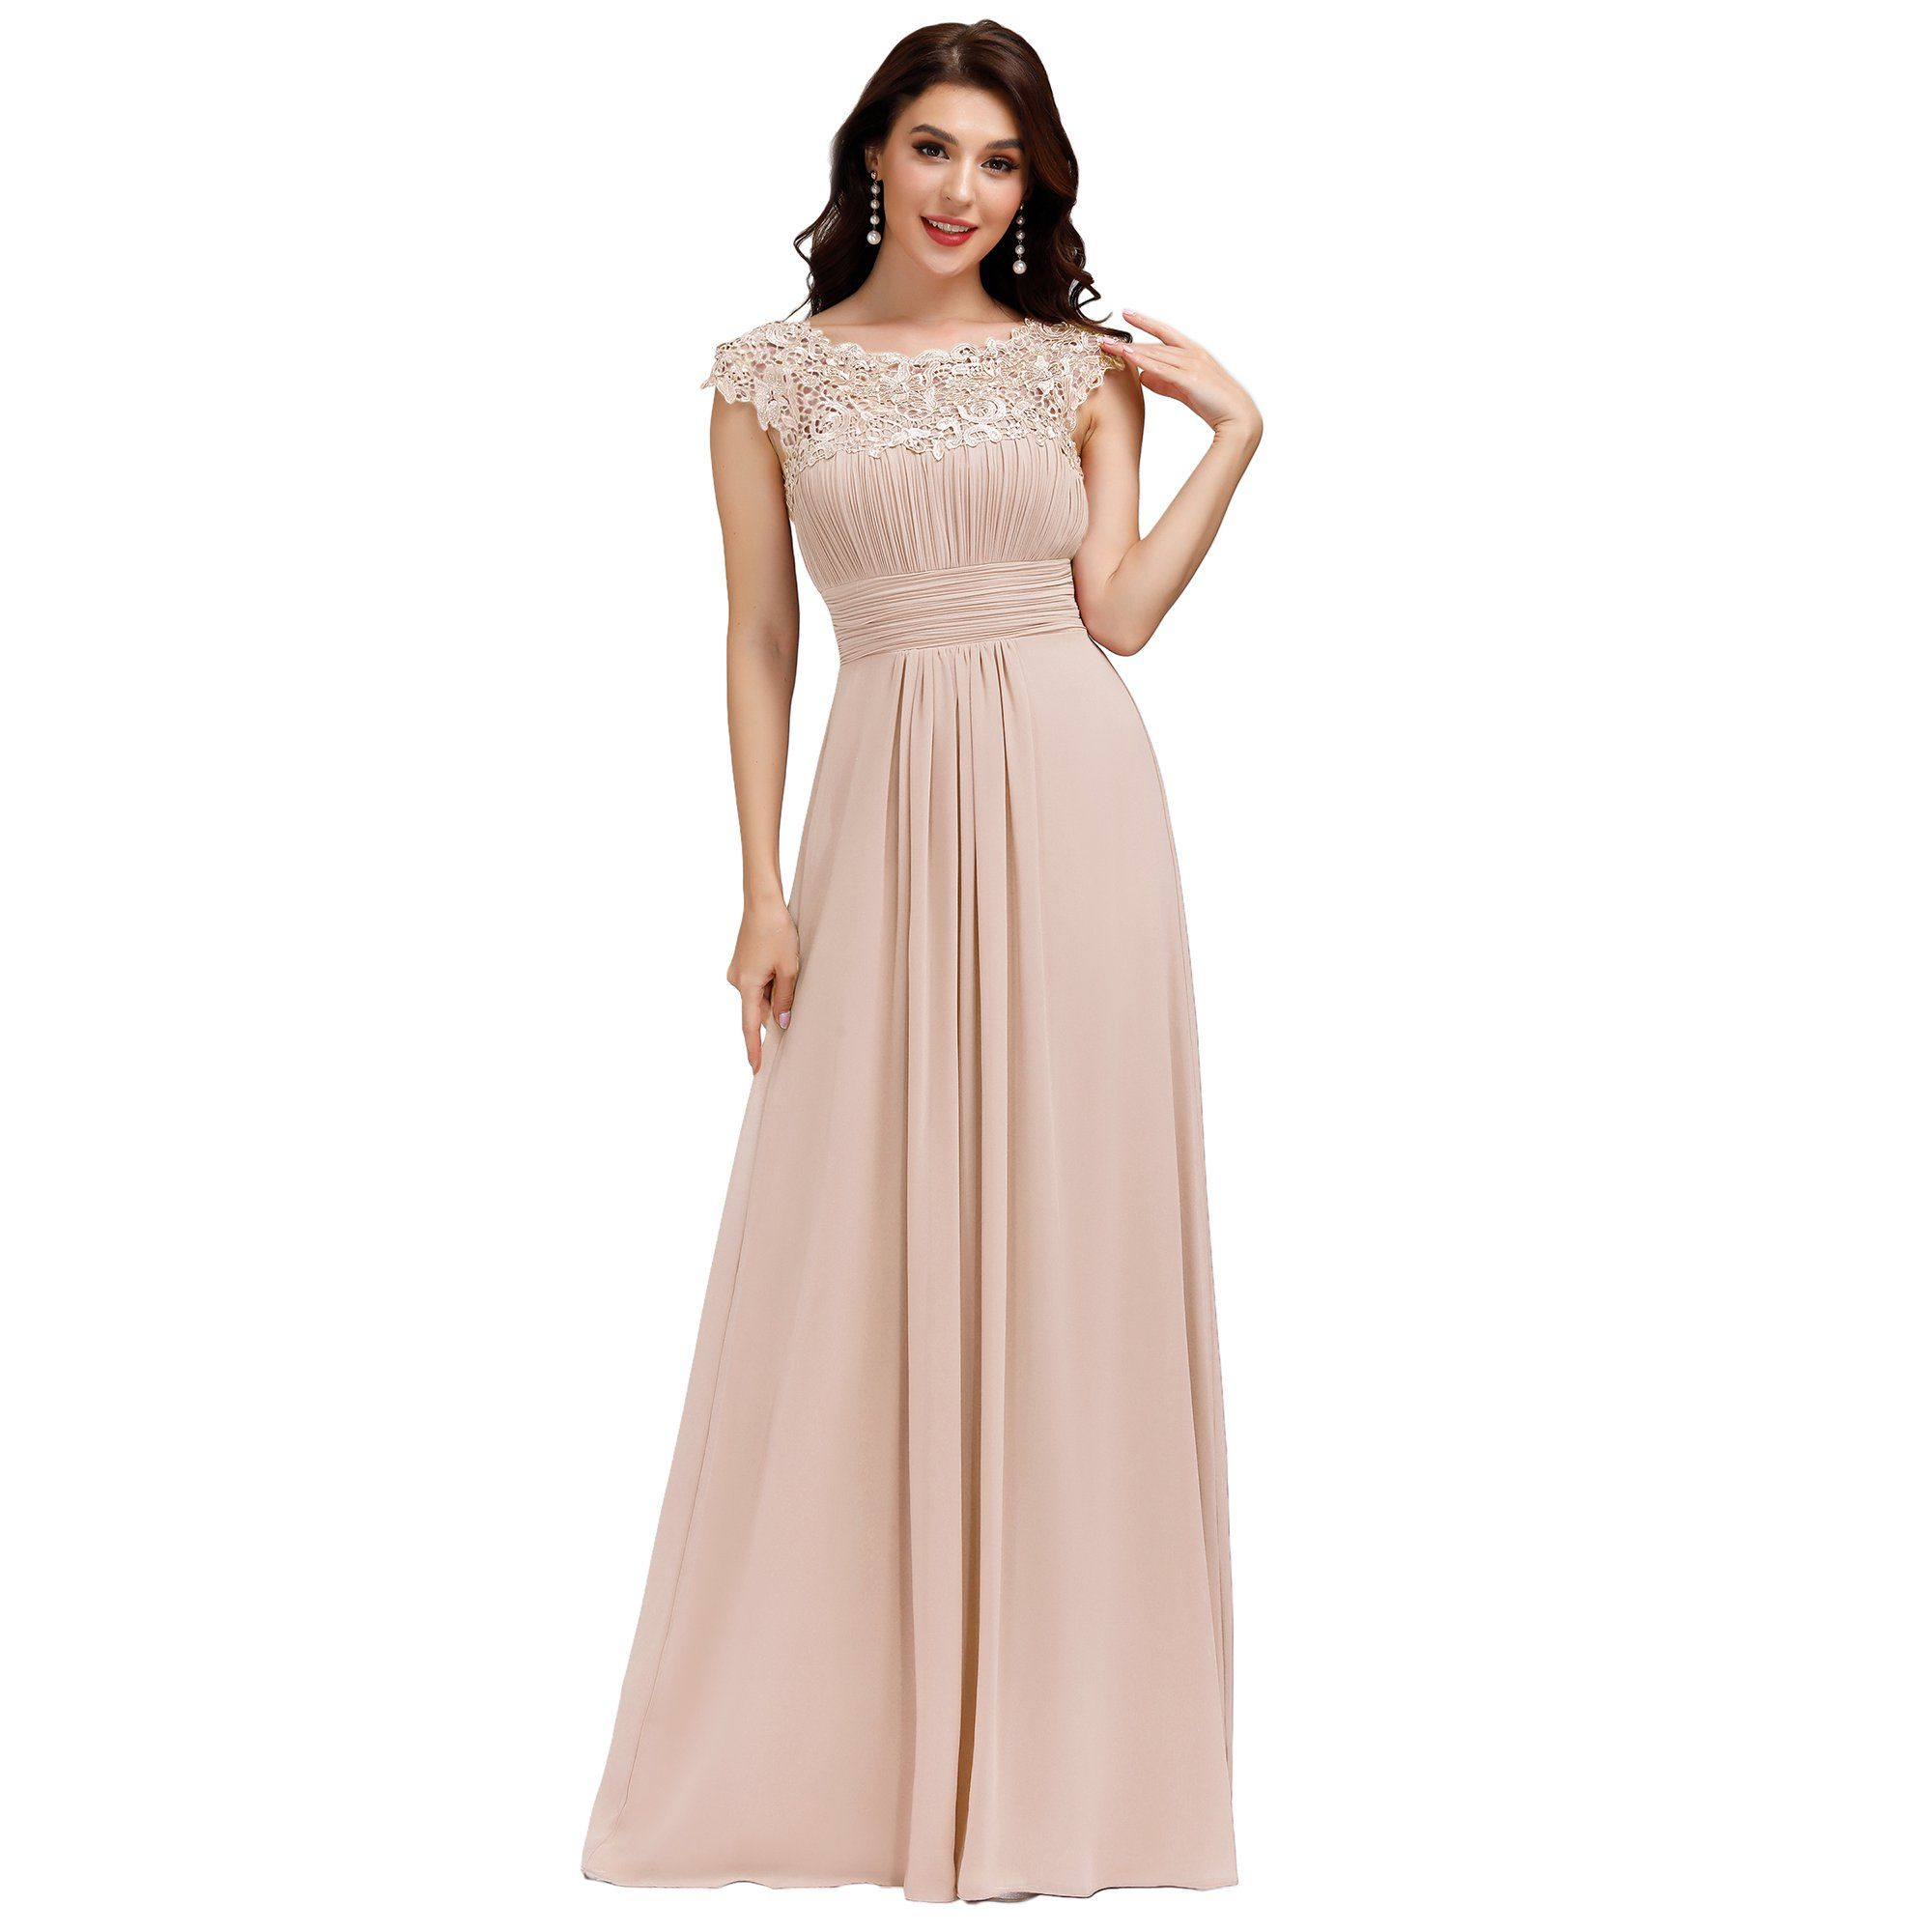 Ever Pretty Ever Pretty Womens Floral Lace Pleated Long Evening Dresses For Women 09993 Gray Us18 Walmart Com Formal Prom Dresses Long Mother Of The Bride Dresses Long Long Bridesmaid Dresses [ 2000 x 2000 Pixel ]